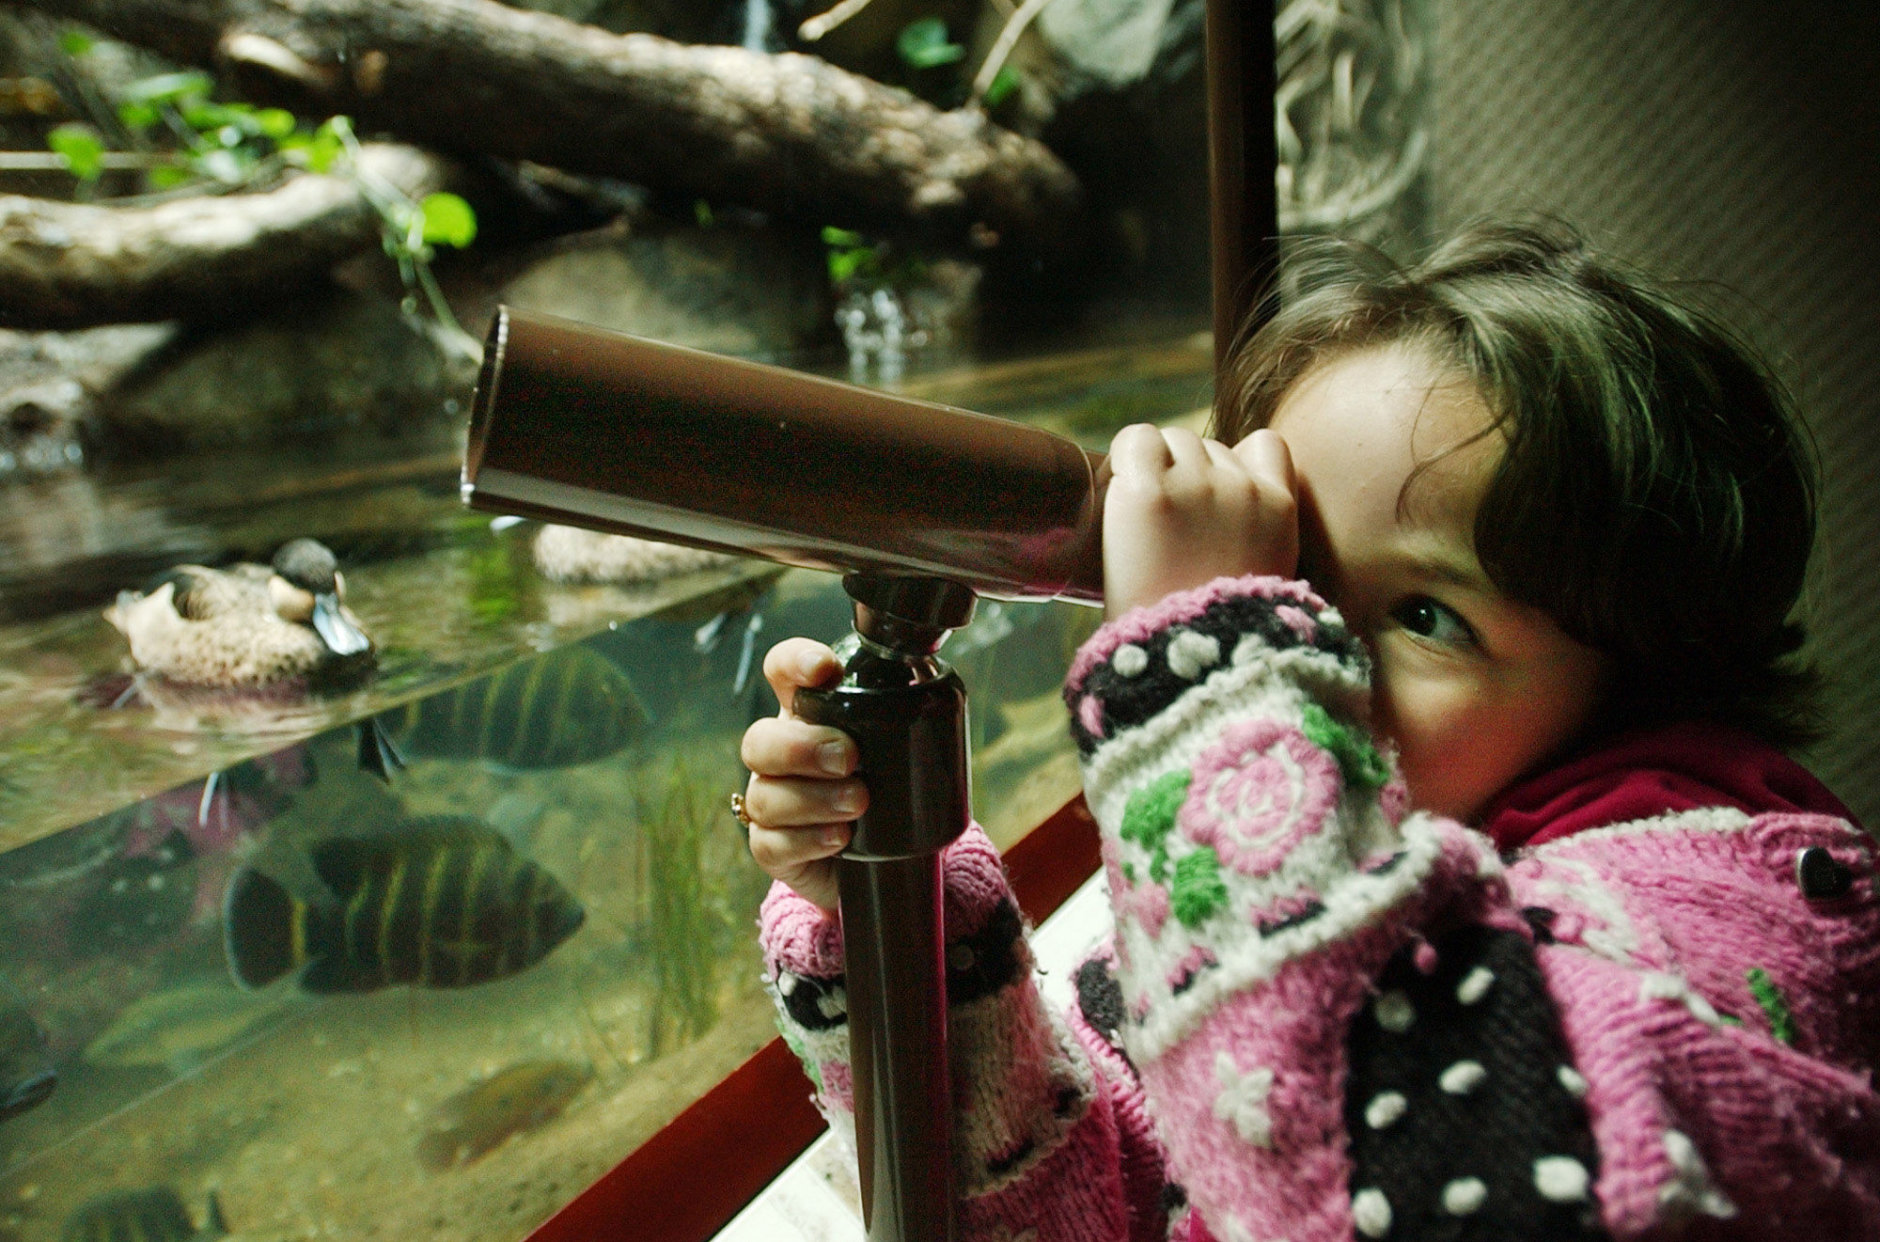 ** ADVANCE FOR WEEKEND EDITIONS, MAY 25-27 **Six year-old Bailey Bass of Garrison, N.Y., peers through a telescope to look at wildlife at the Bronx Zoo Tuesday, May 14, 2002, in New York. When non-New Yorkers think of the Bronx, Yankee Stadium and the Bronx Zoo come to mind. But there's much more than baseball and beasts in the only part of Gotham that's on the U.S. mainland. (AP Photo/Kathy Willens)